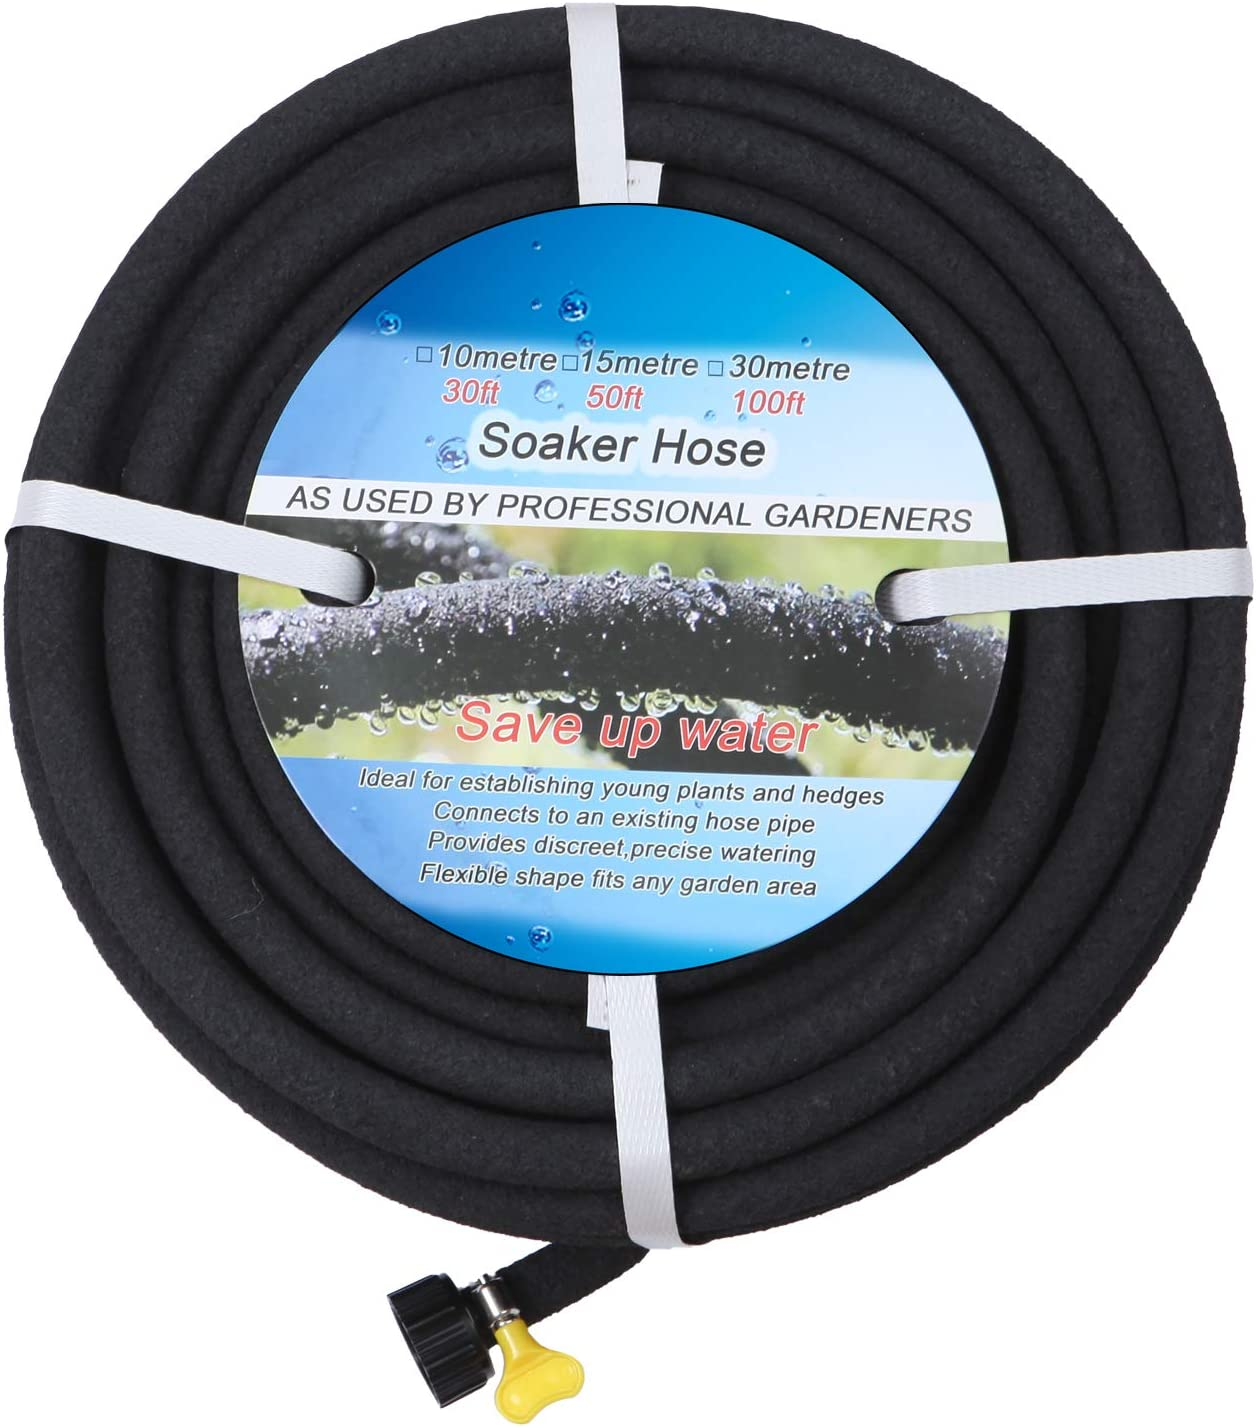 """BUYOOKAY Soaker Hose 100ft with 1/2'' Diameter Interface Saves 70% Water Great for Gardens/Flower Beds Black (100' x 1/2""""-a, Black)"""